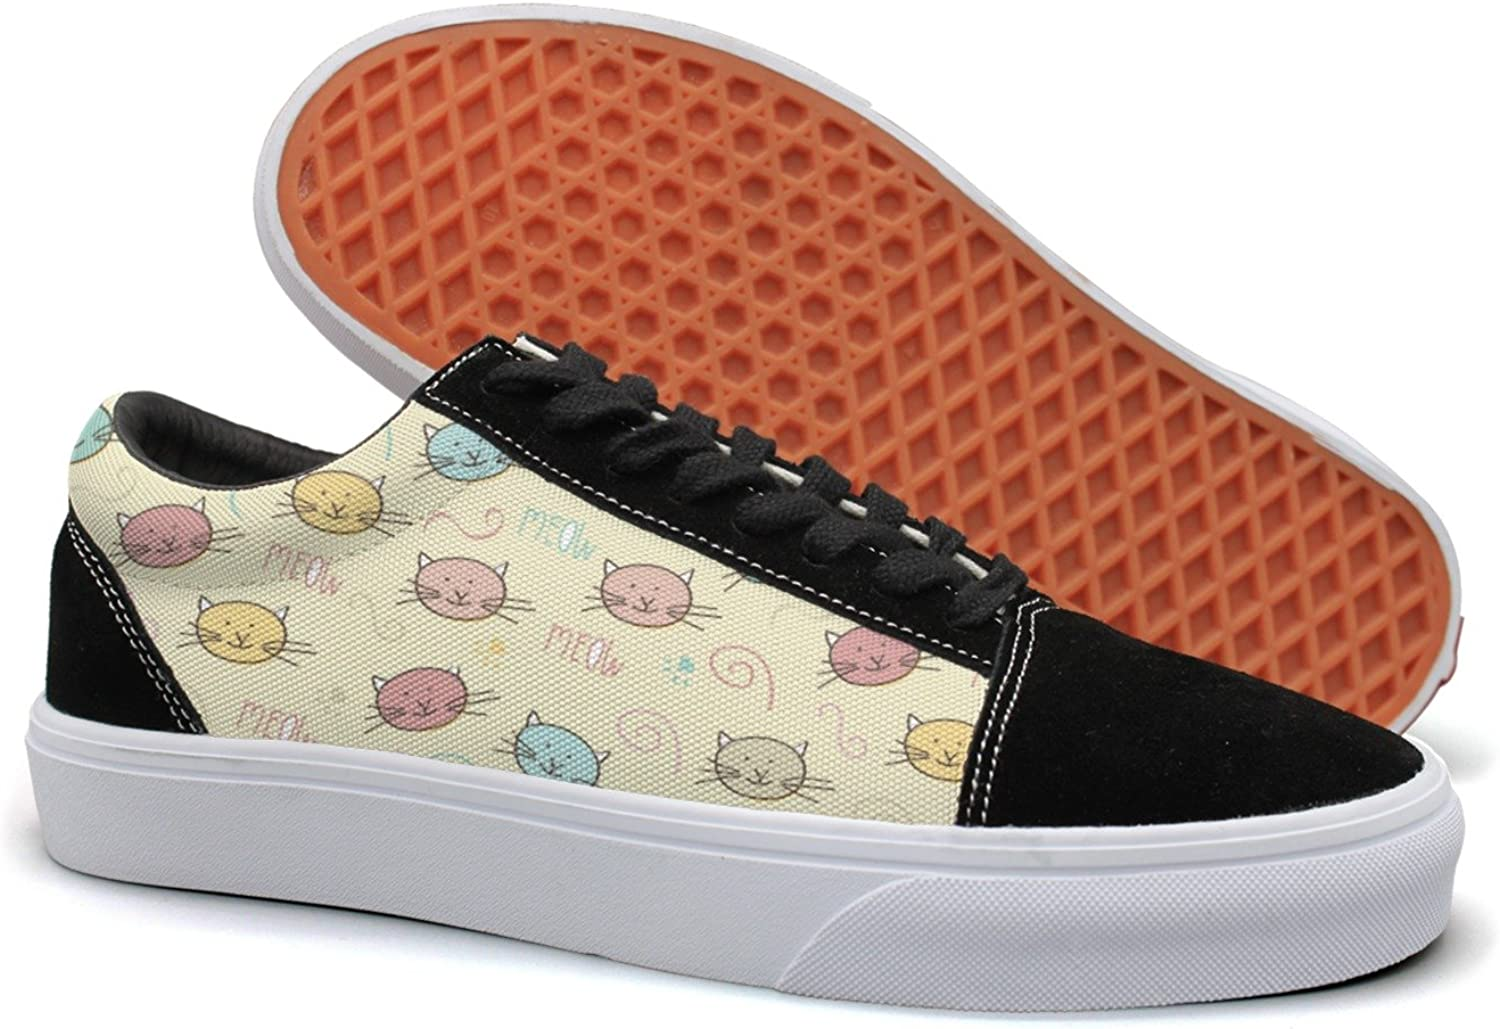 Hjkggd fgfds Casual Cat Face Kitten MOEW Yellow Background Beautiful Women Canvas Sneakers shoes